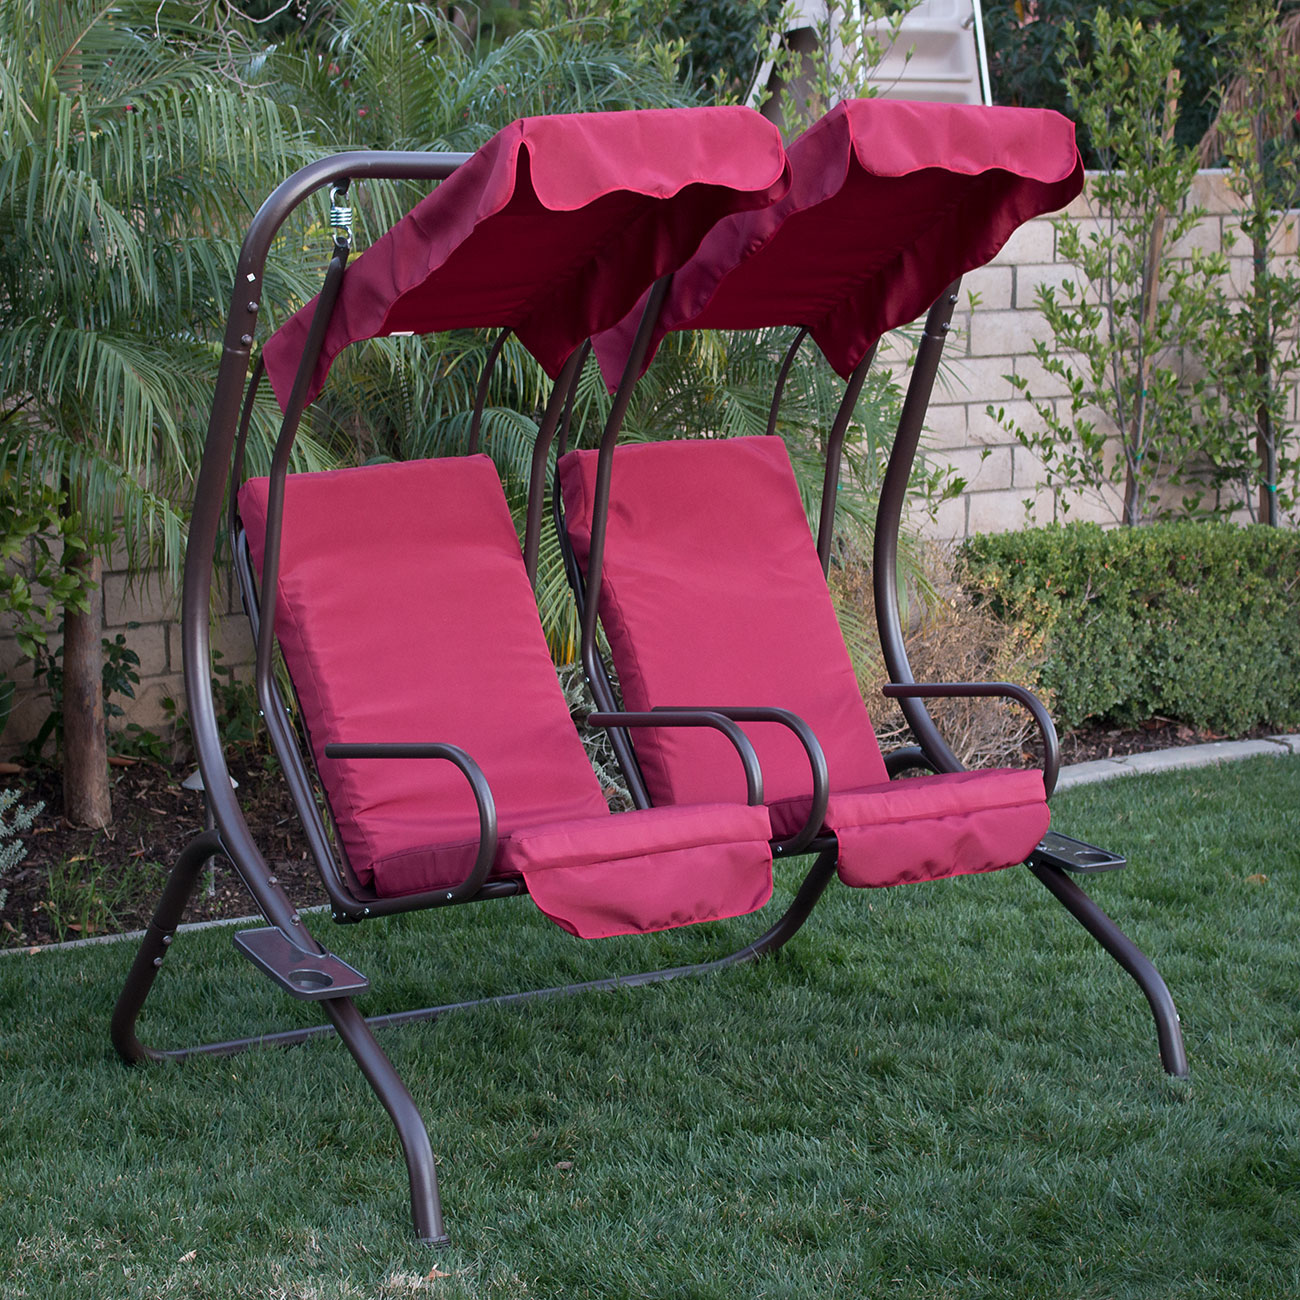 NEW-Outdoor-Swing-Set-2-Person-Patio-Frame- & NEW Outdoor Swing Set 2-Person Patio Frame Padded Seat Furniture ...